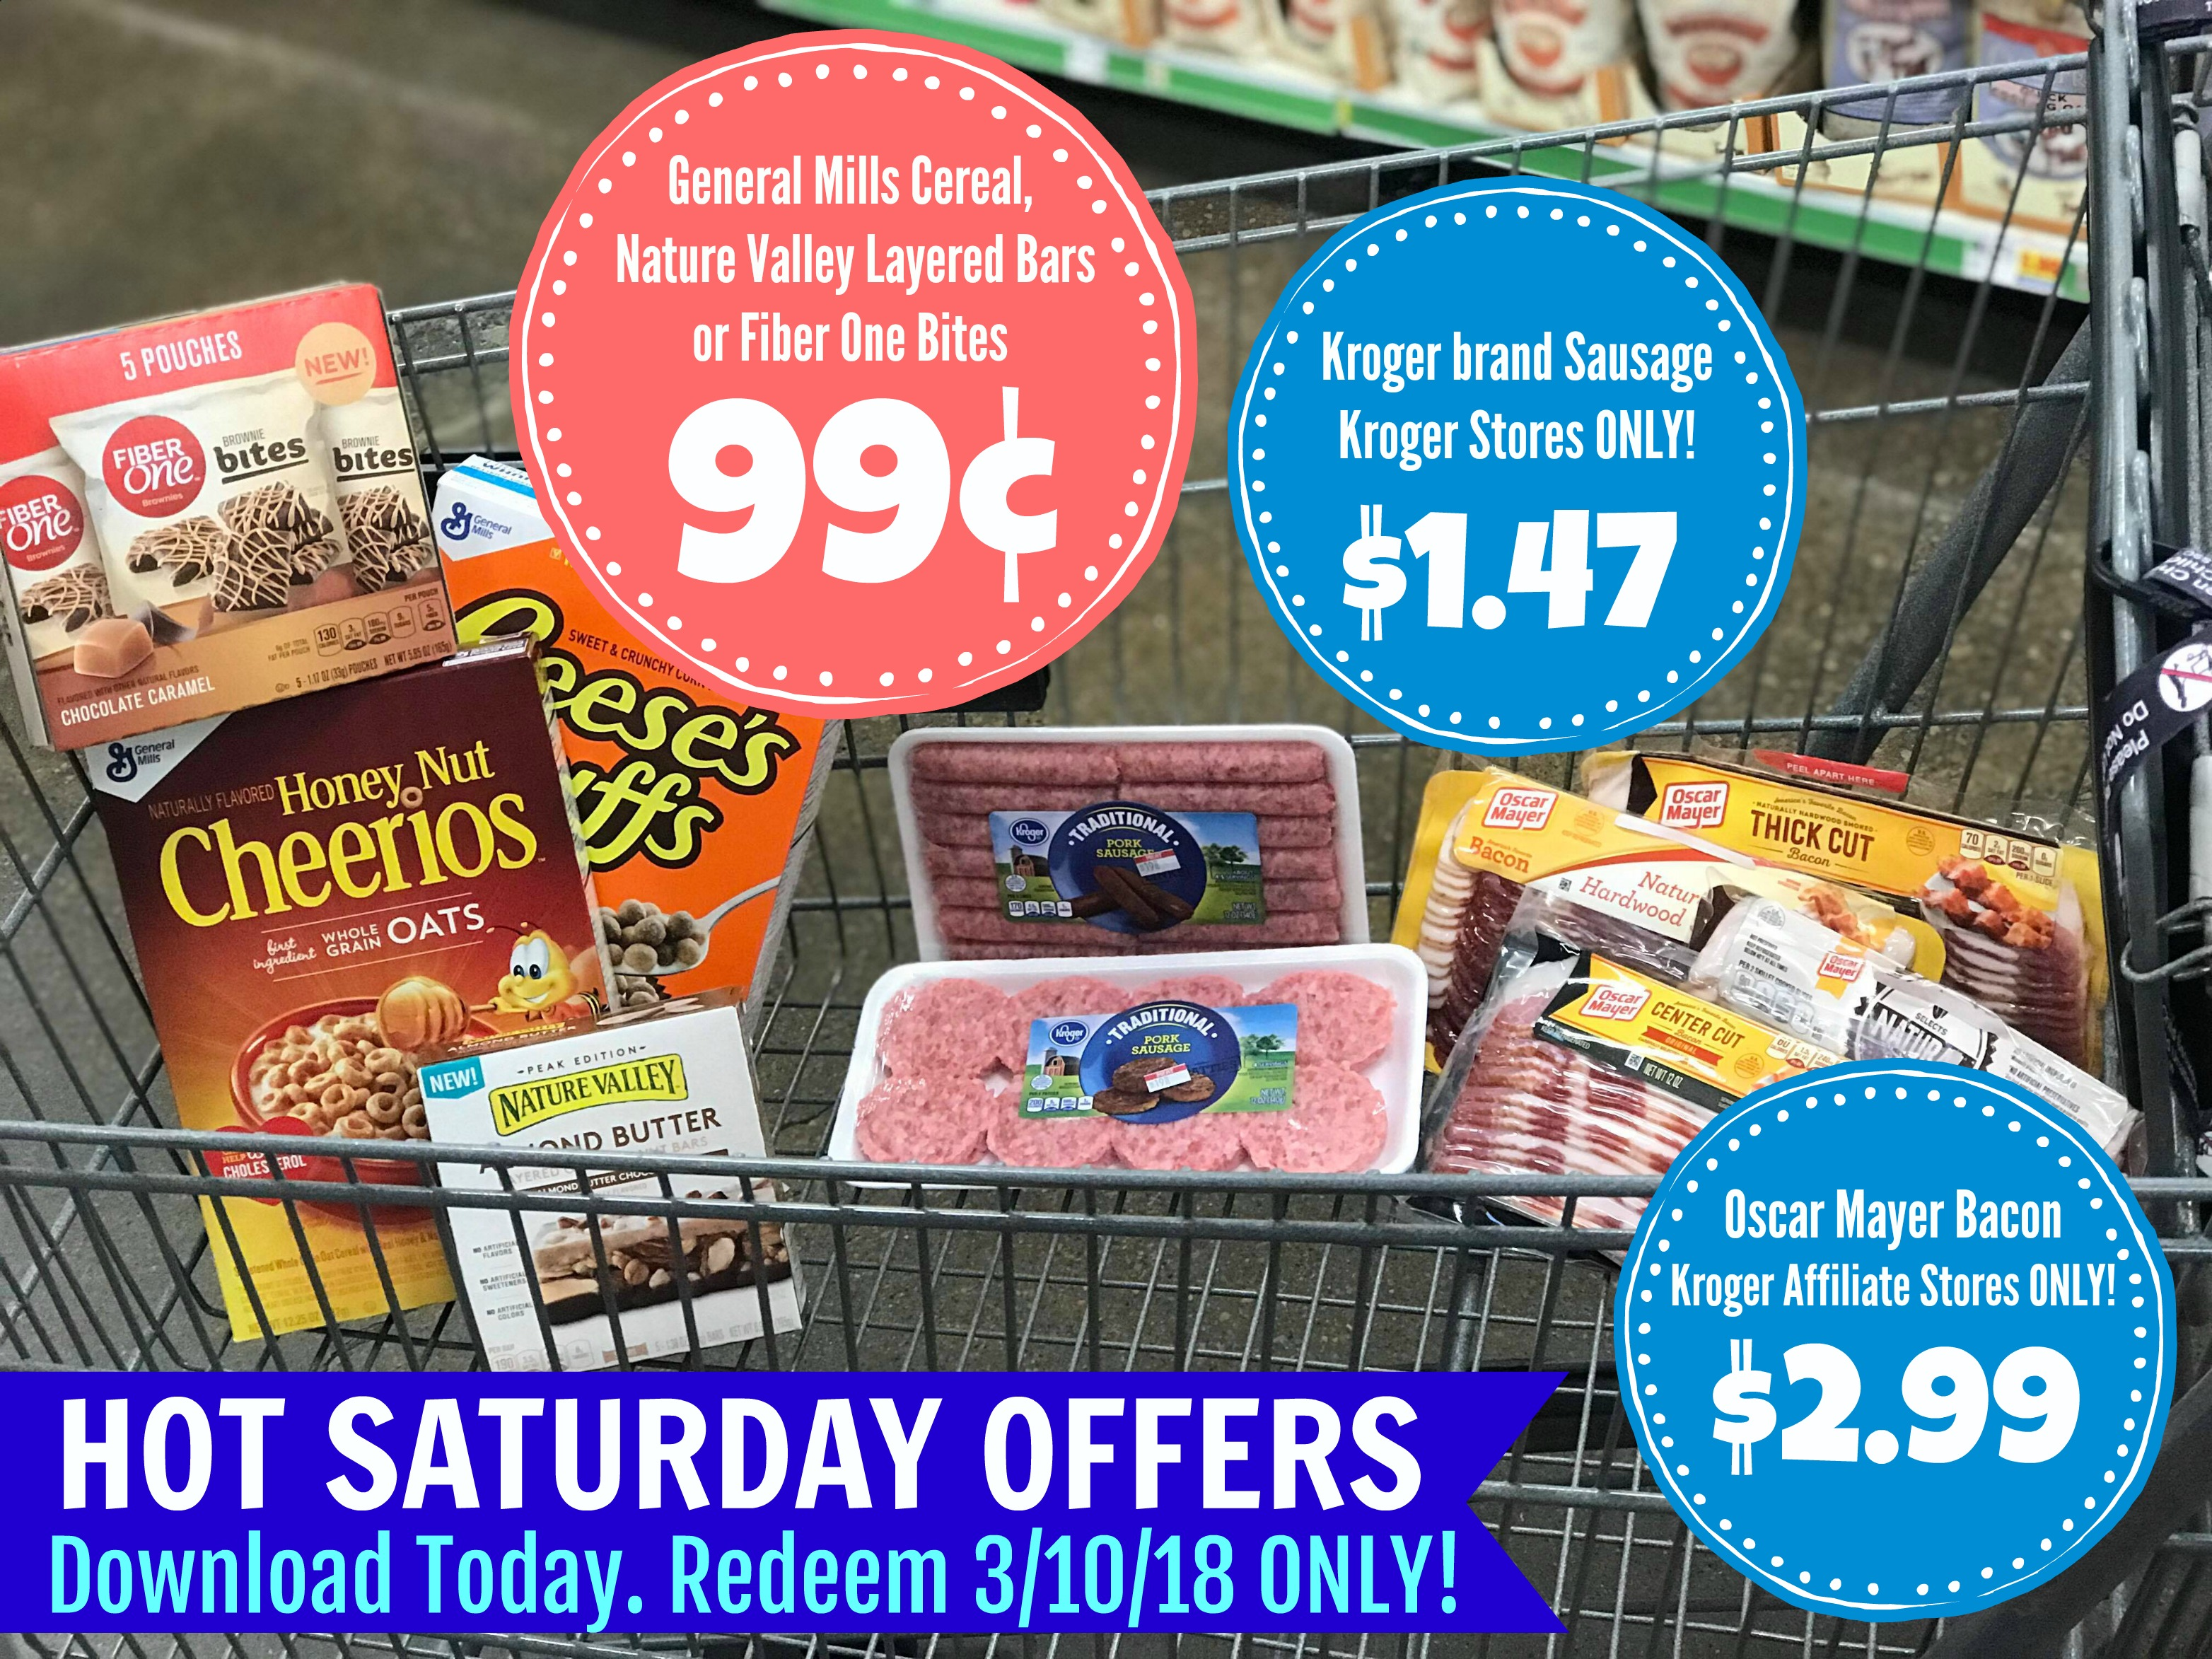 photograph regarding Oscar Meyer Printable Coupons named Very hot SATURDAY Specials In general Mills Cereal and Bars Merely